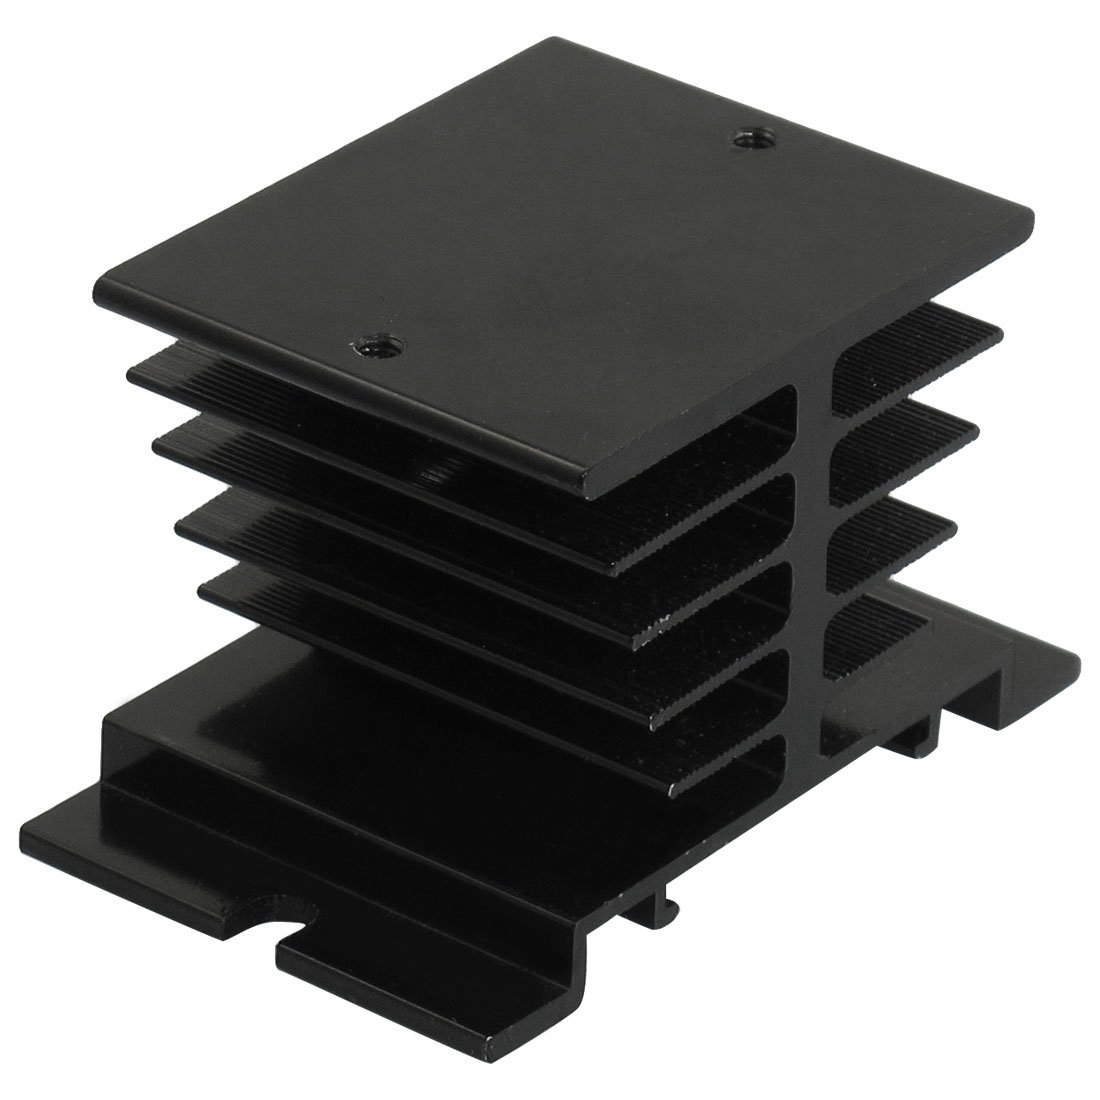 Aluminum Heat Sink 80mm x 50mm x 50mm for Solid State Relay,可领取元淘宝优惠券